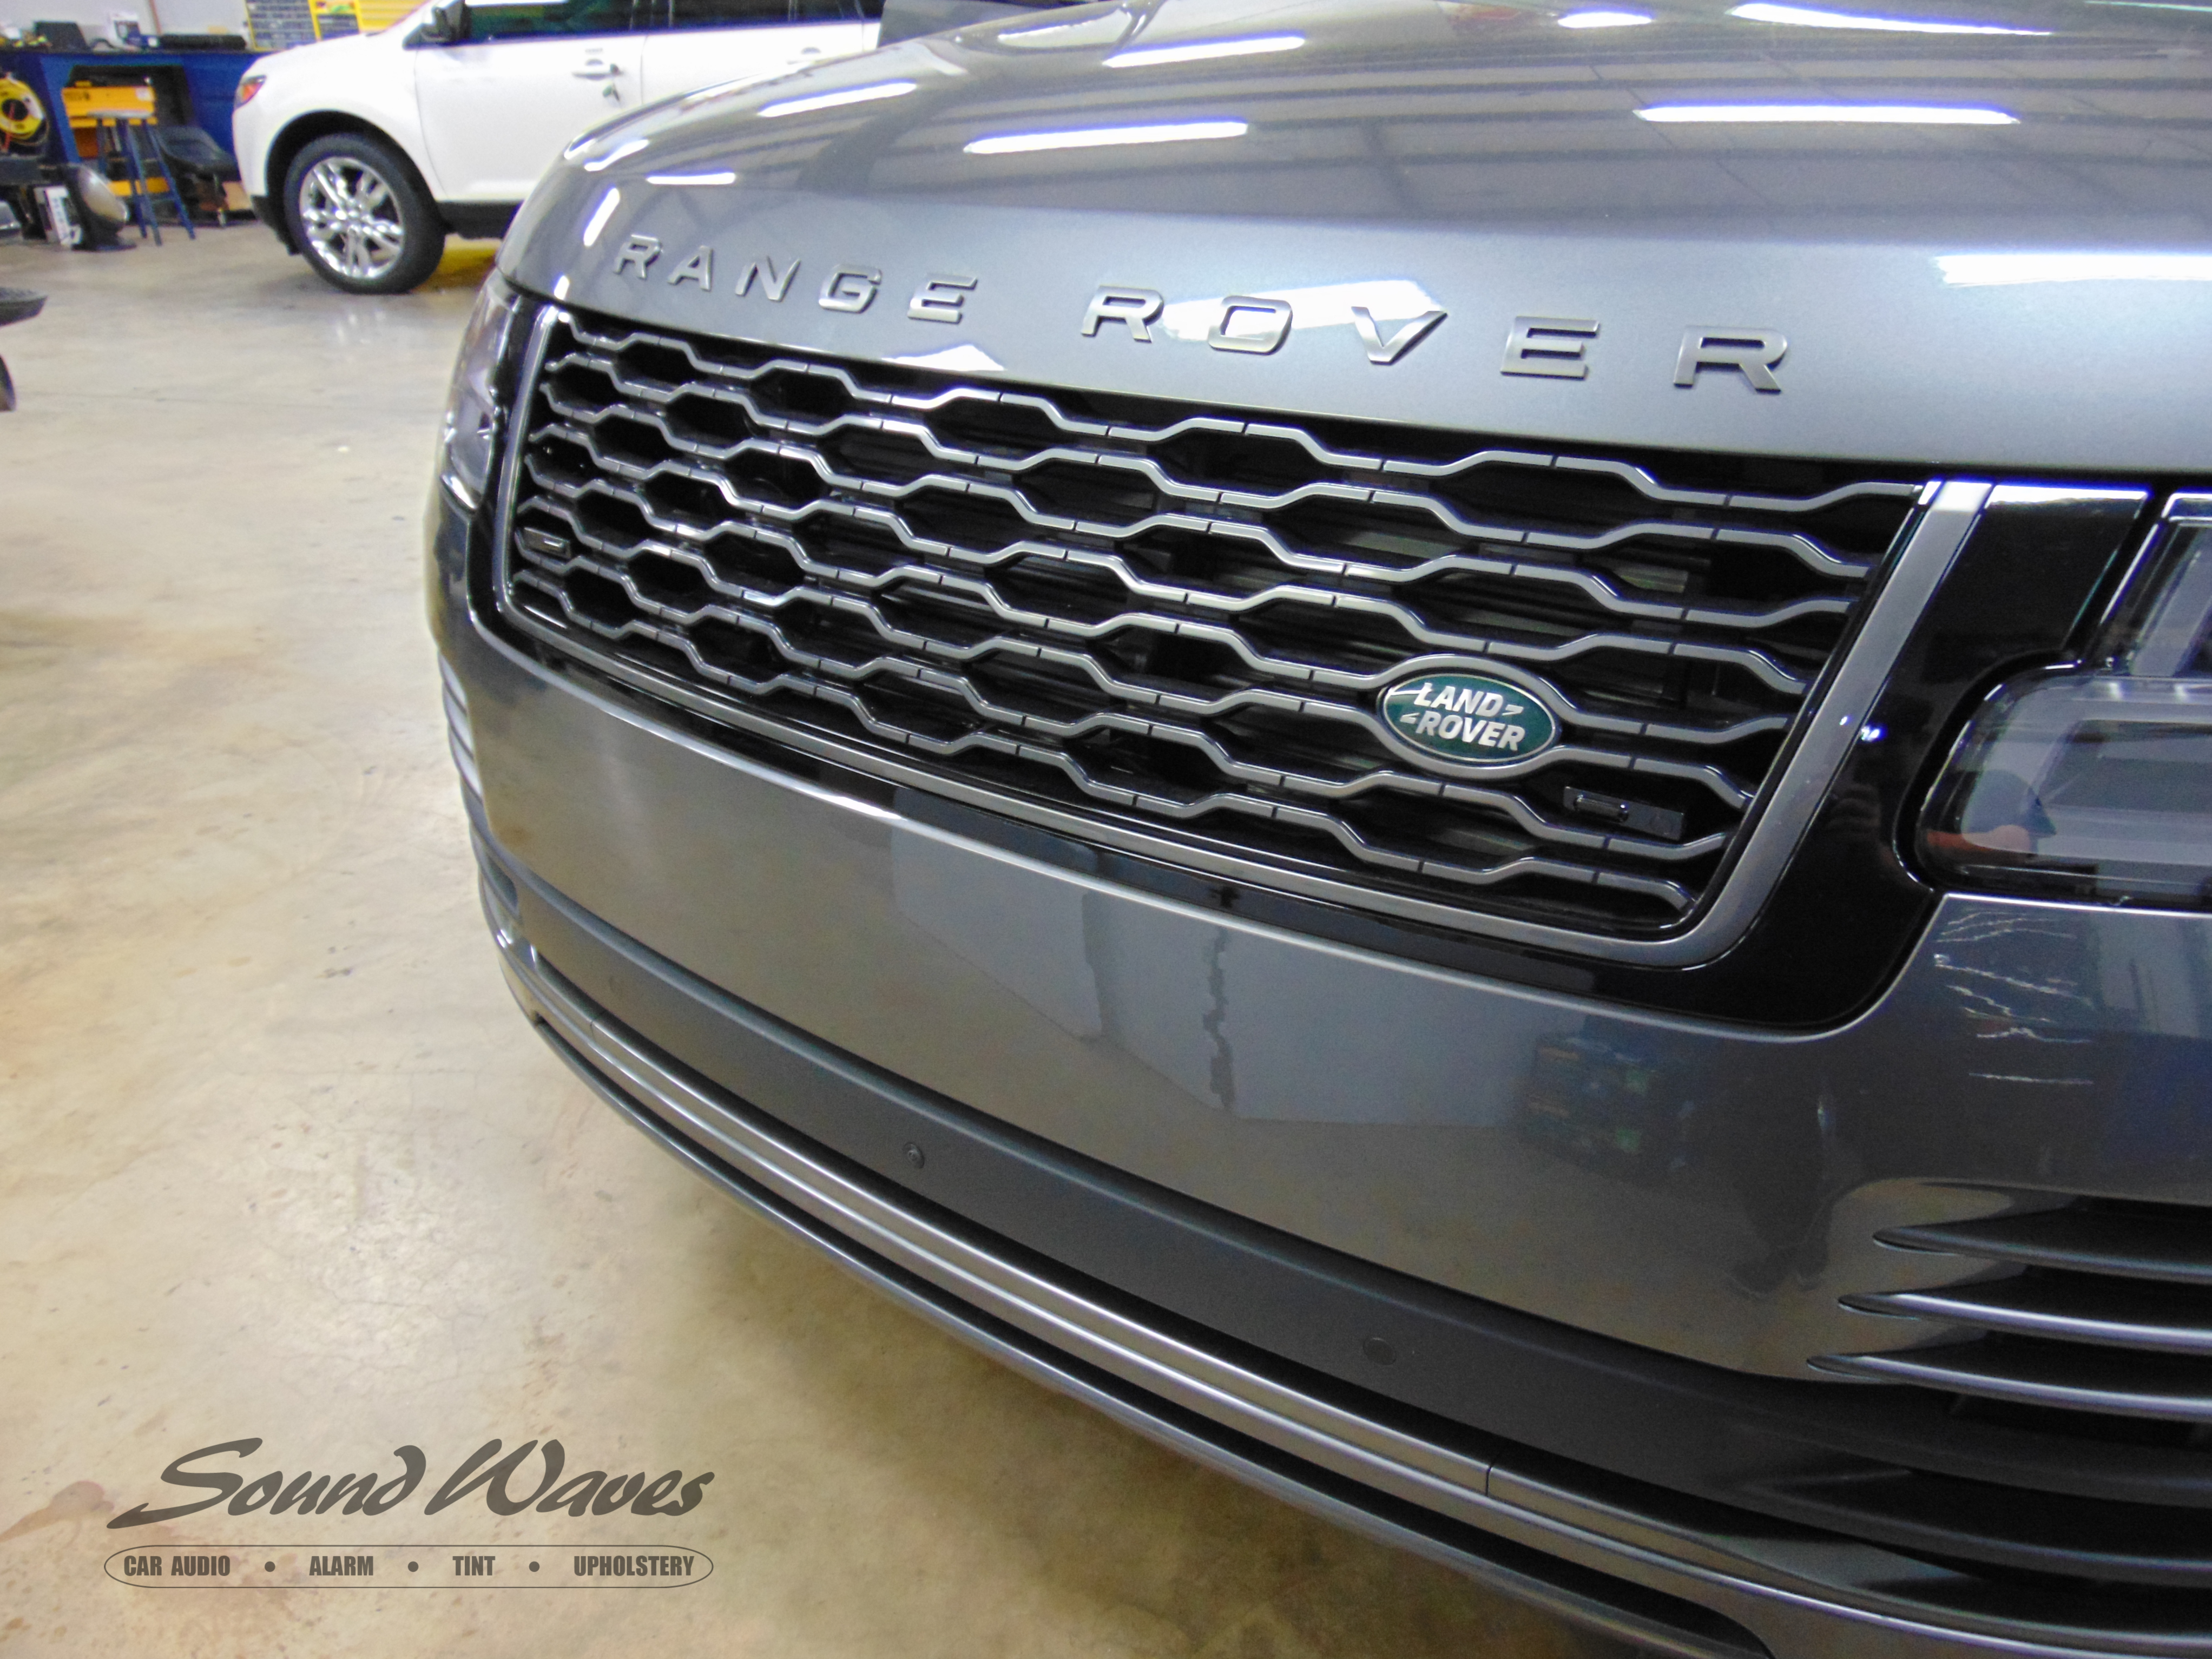 Range Rover Grill